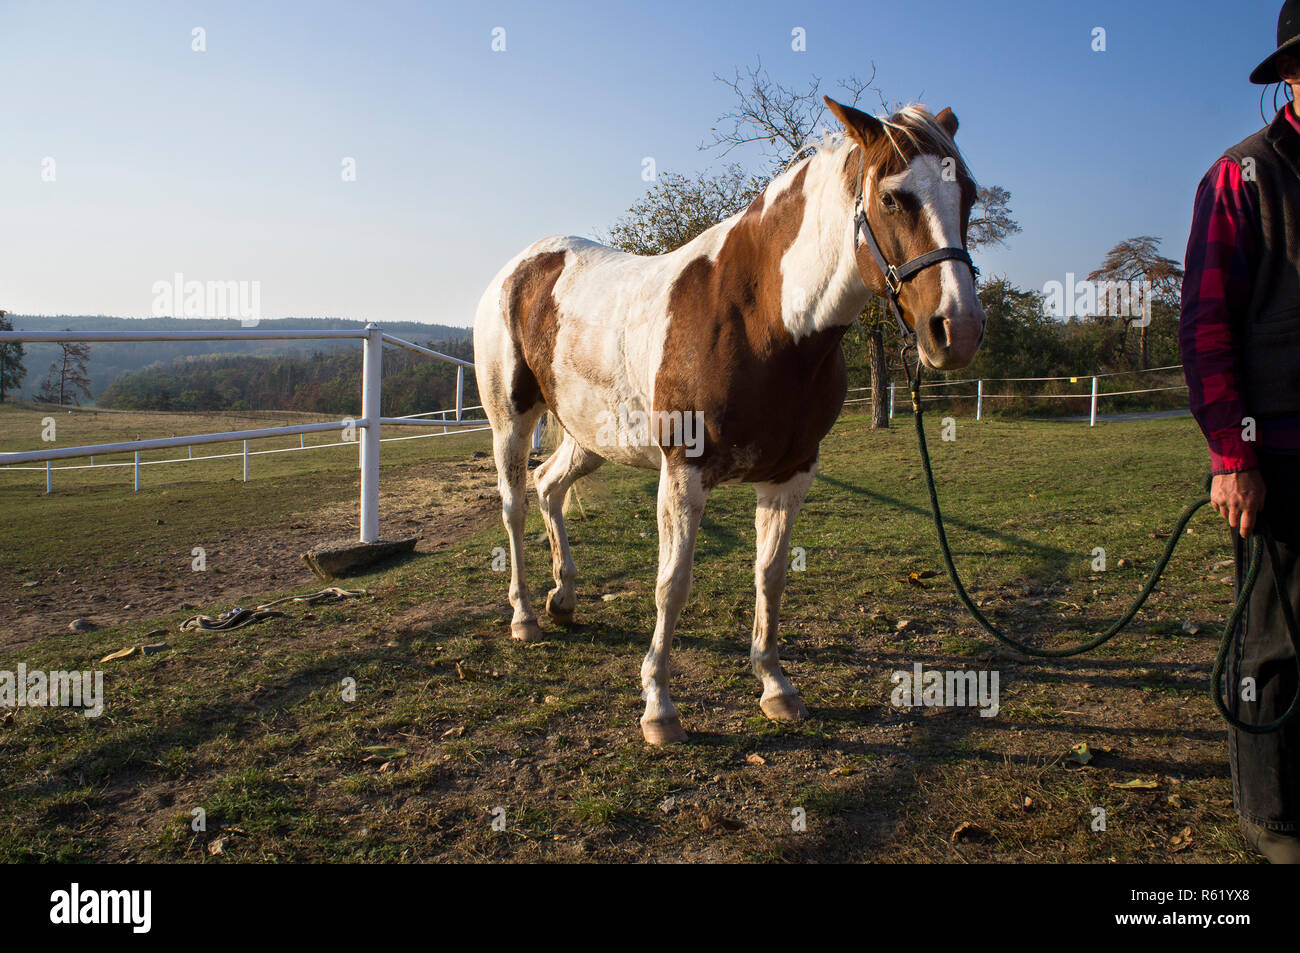 Spotted Coat Stock Photos & Spotted Coat Stock Images - Alamy